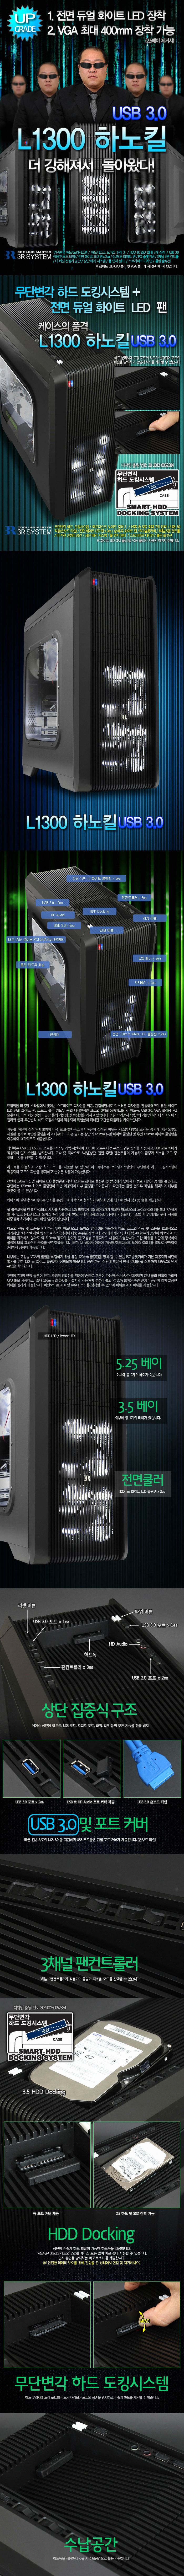 l1300_black_hnk_contents_01new_700px.jpg